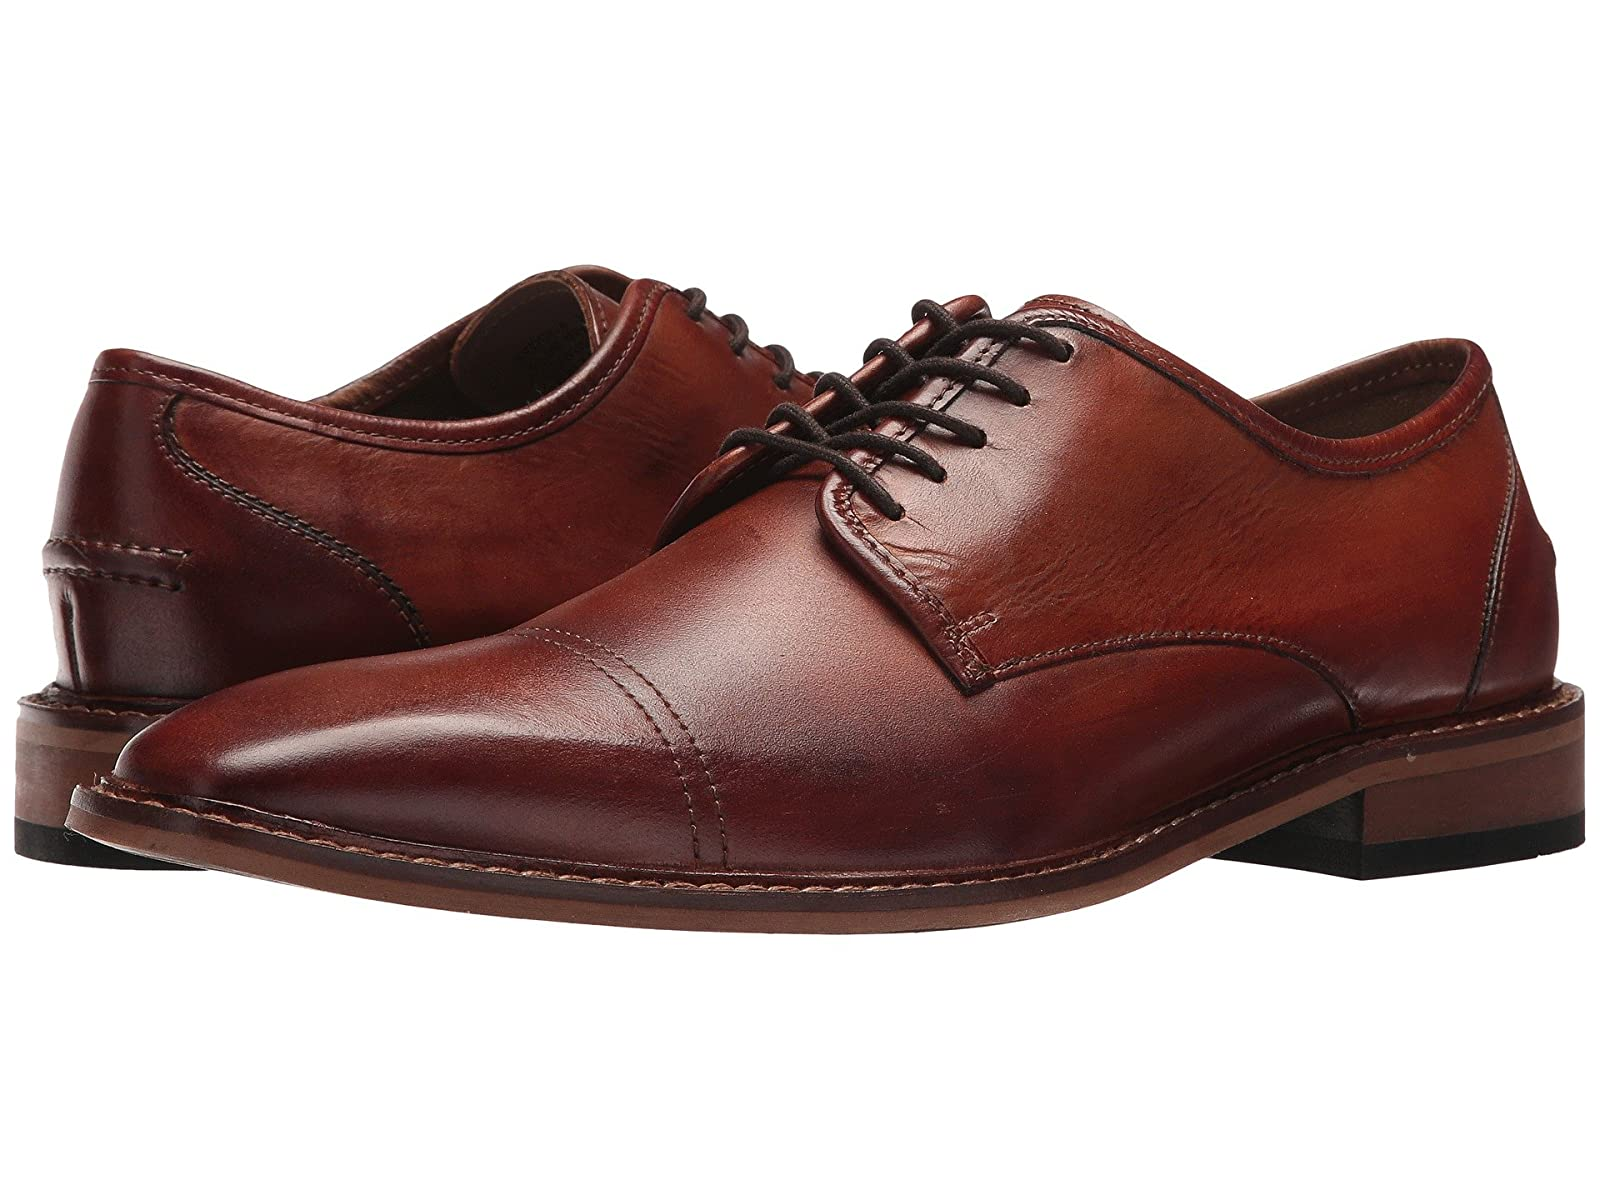 Giorgio Brutini RambleAtmospheric grades have affordable shoes